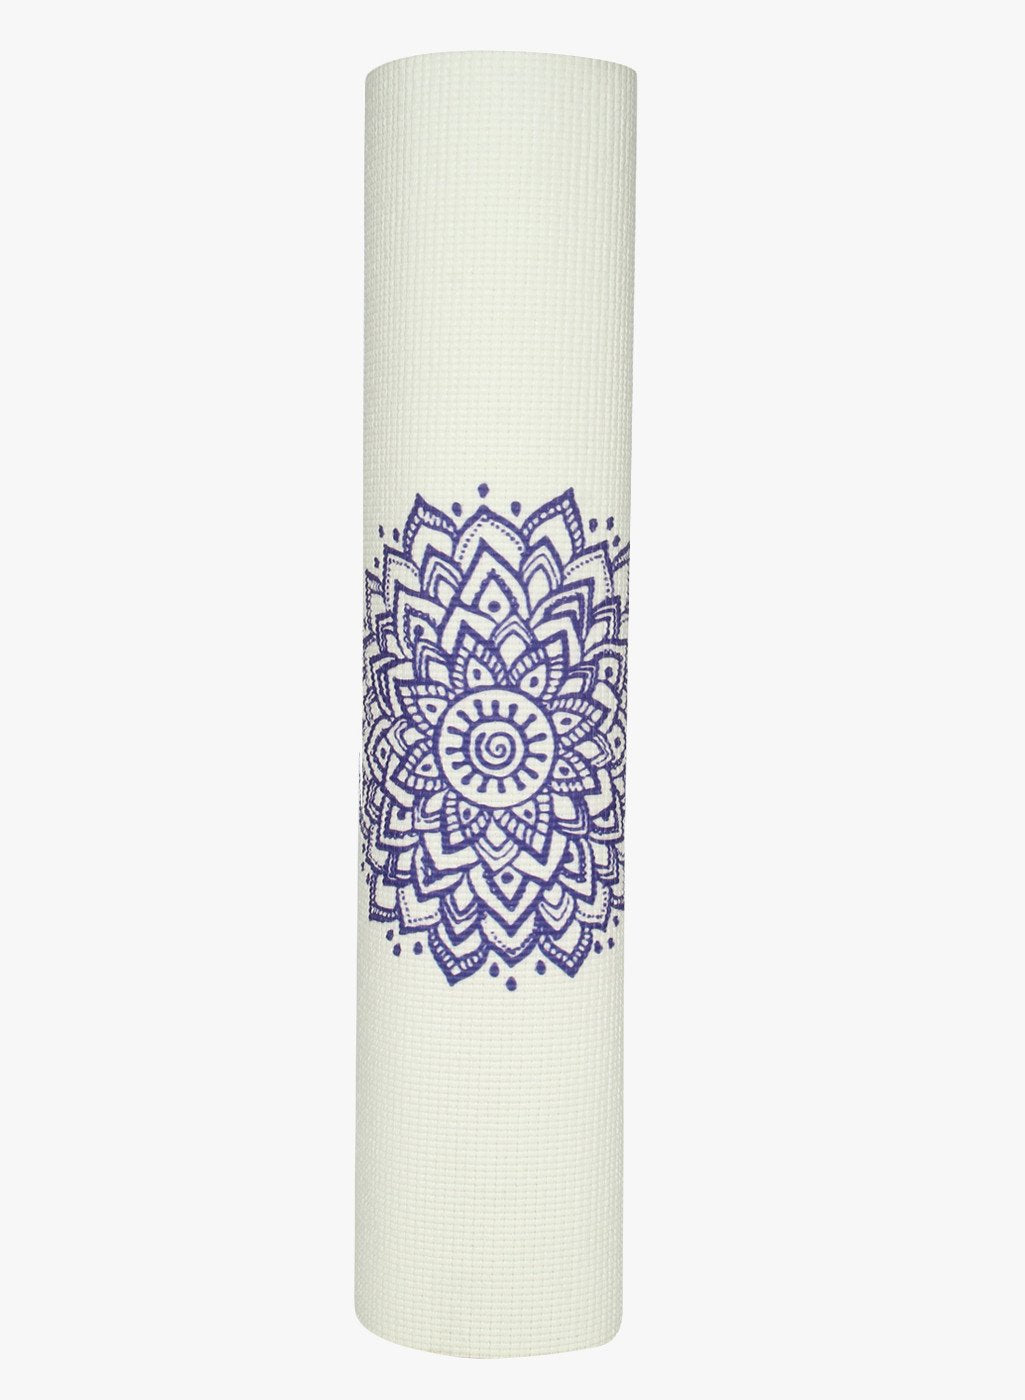 Spiritual Warrior's eco-friendly yoga mats have great grip, anti-slip, good cushioning for the knees, high quality, portable, affordable with Chakra print